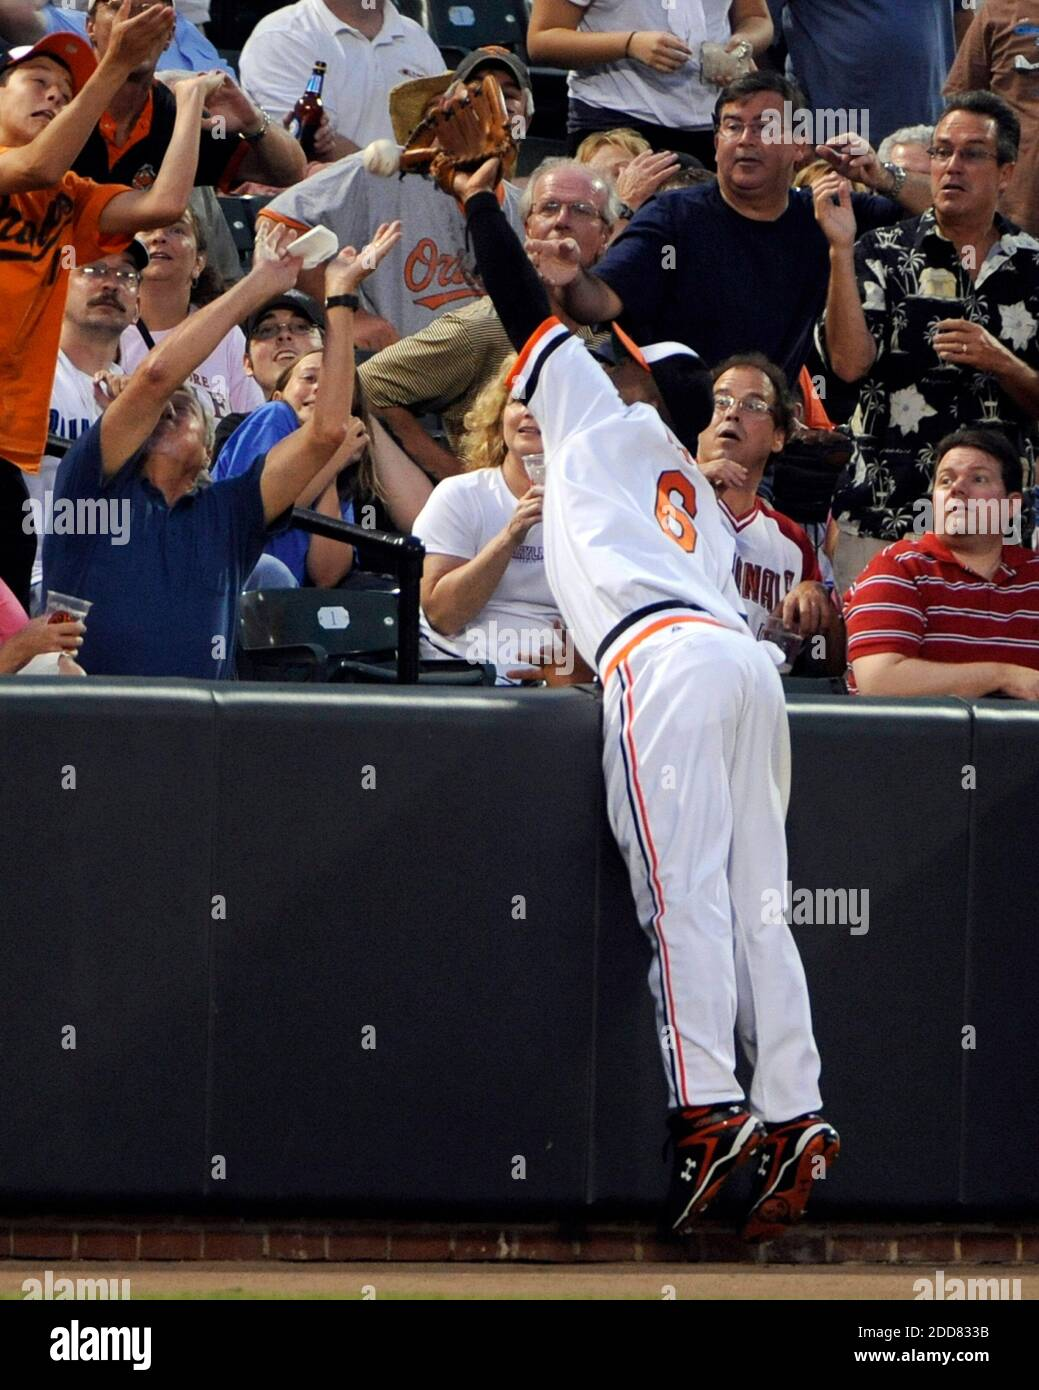 The Baltimore Orioles' Melvin Mora can't catch a foul pop as he dives into the stands on a ball hit by the Toronto Blue Jays' Matt Stairs in the fourth inning at Oriole Park at Camden Yards in Baltimore, MD, USA on July 23, 2008. Photo by Lloyd Fox/Baltimore Sun/MCT/Cameleon/ABACAPRESS.COM Stock Photo